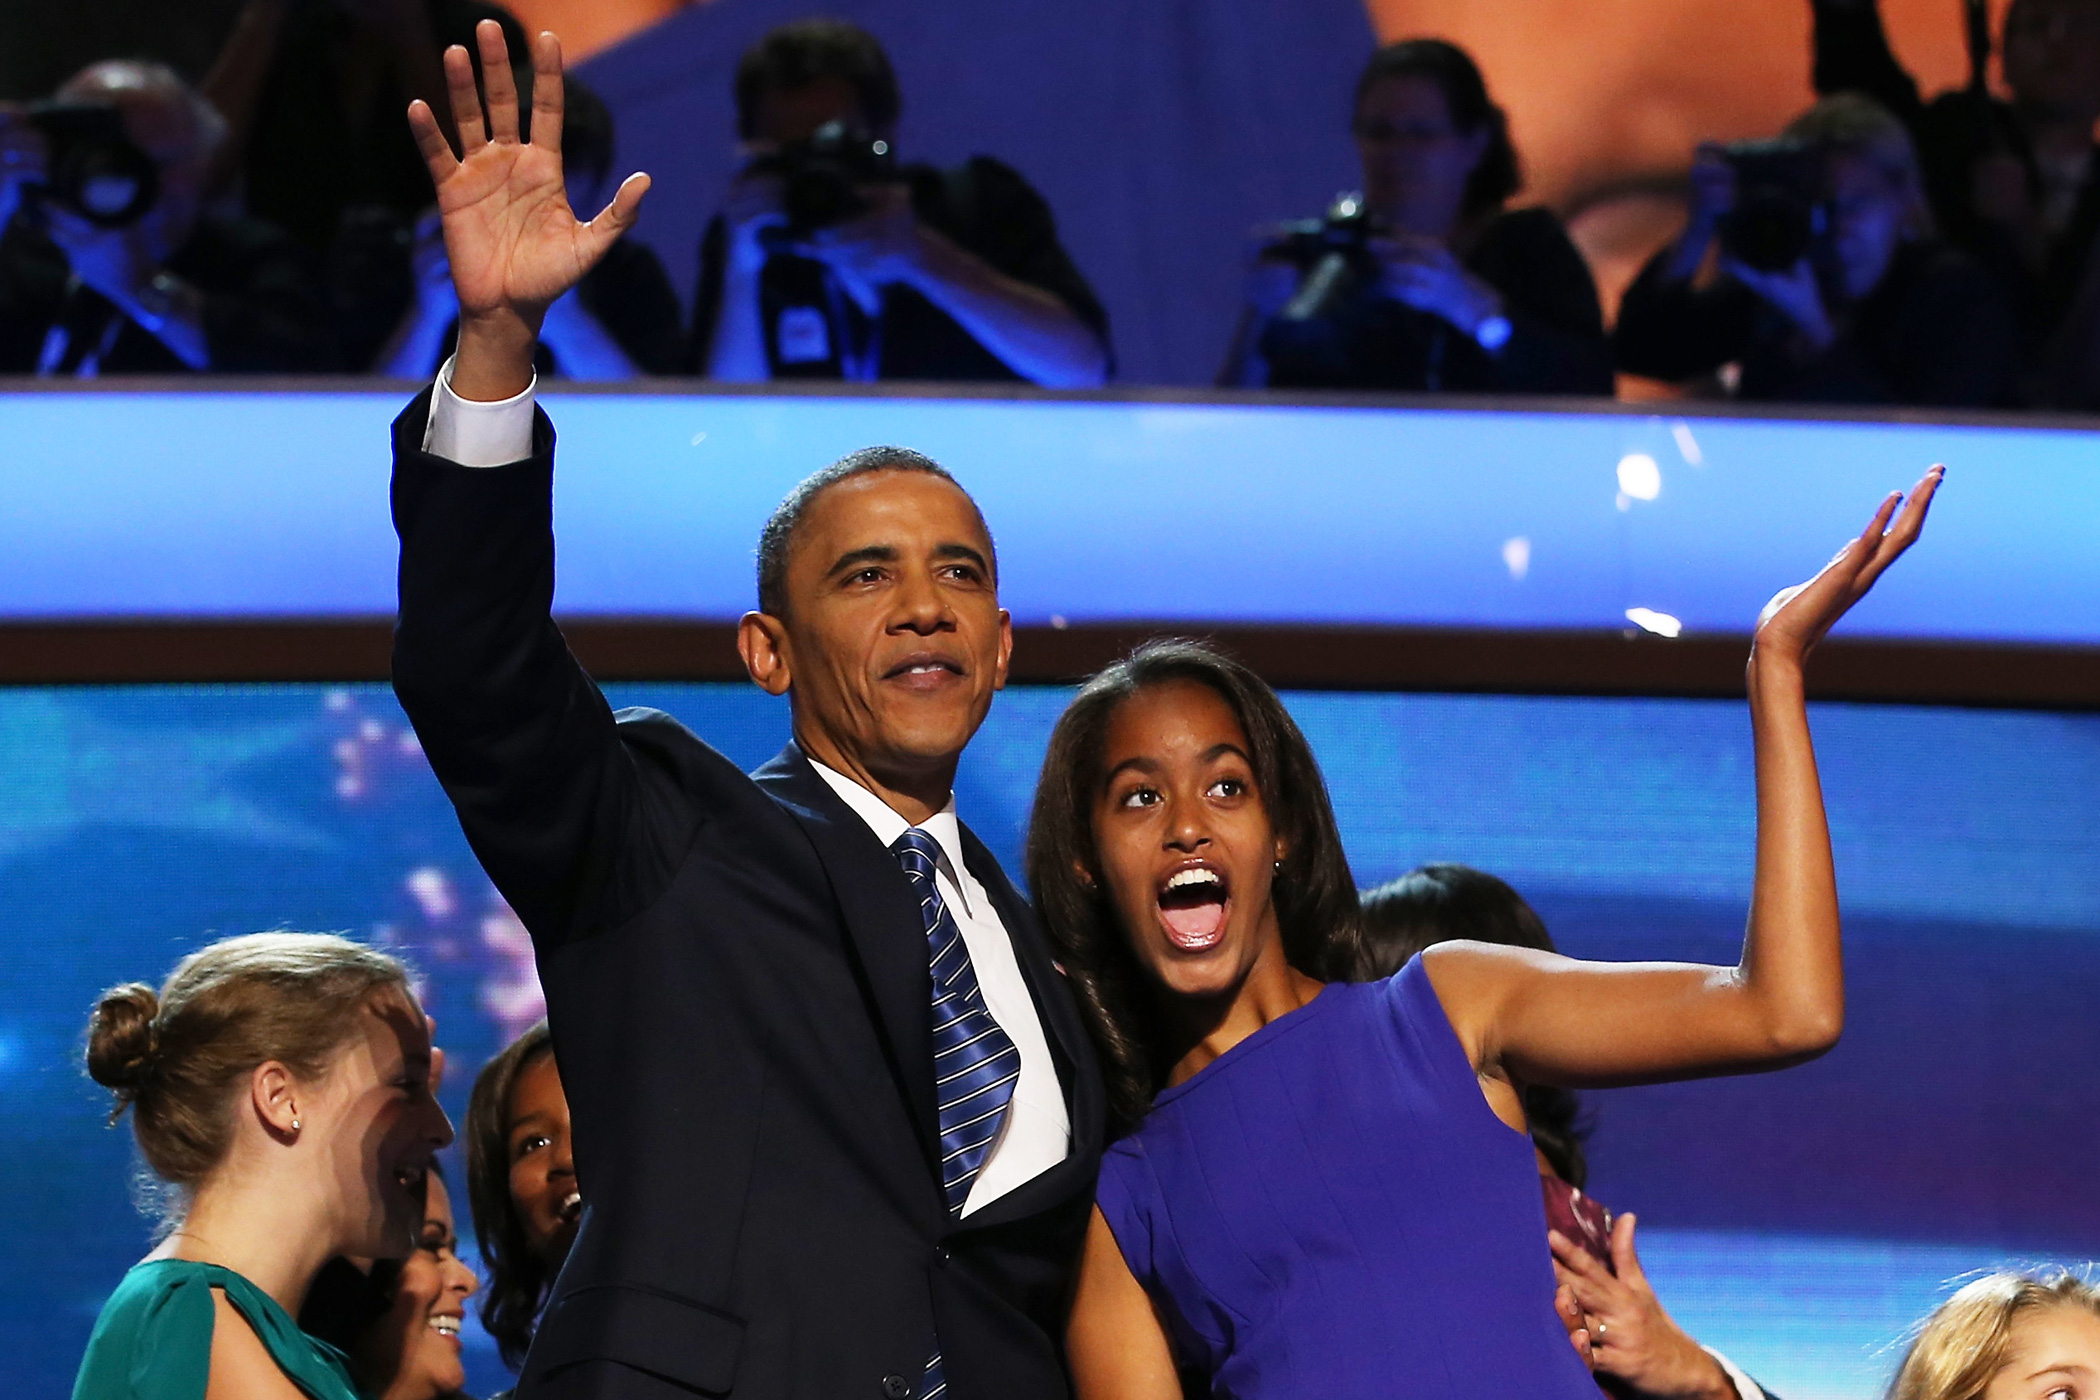 Sept. 6, 2012                                                              President Barack Obama waves on stage with daughter Malia Obama after accepting the nomination during the final day of the Democratic National Convention at Time Warner Cable Arena in Charlotte, N.C.